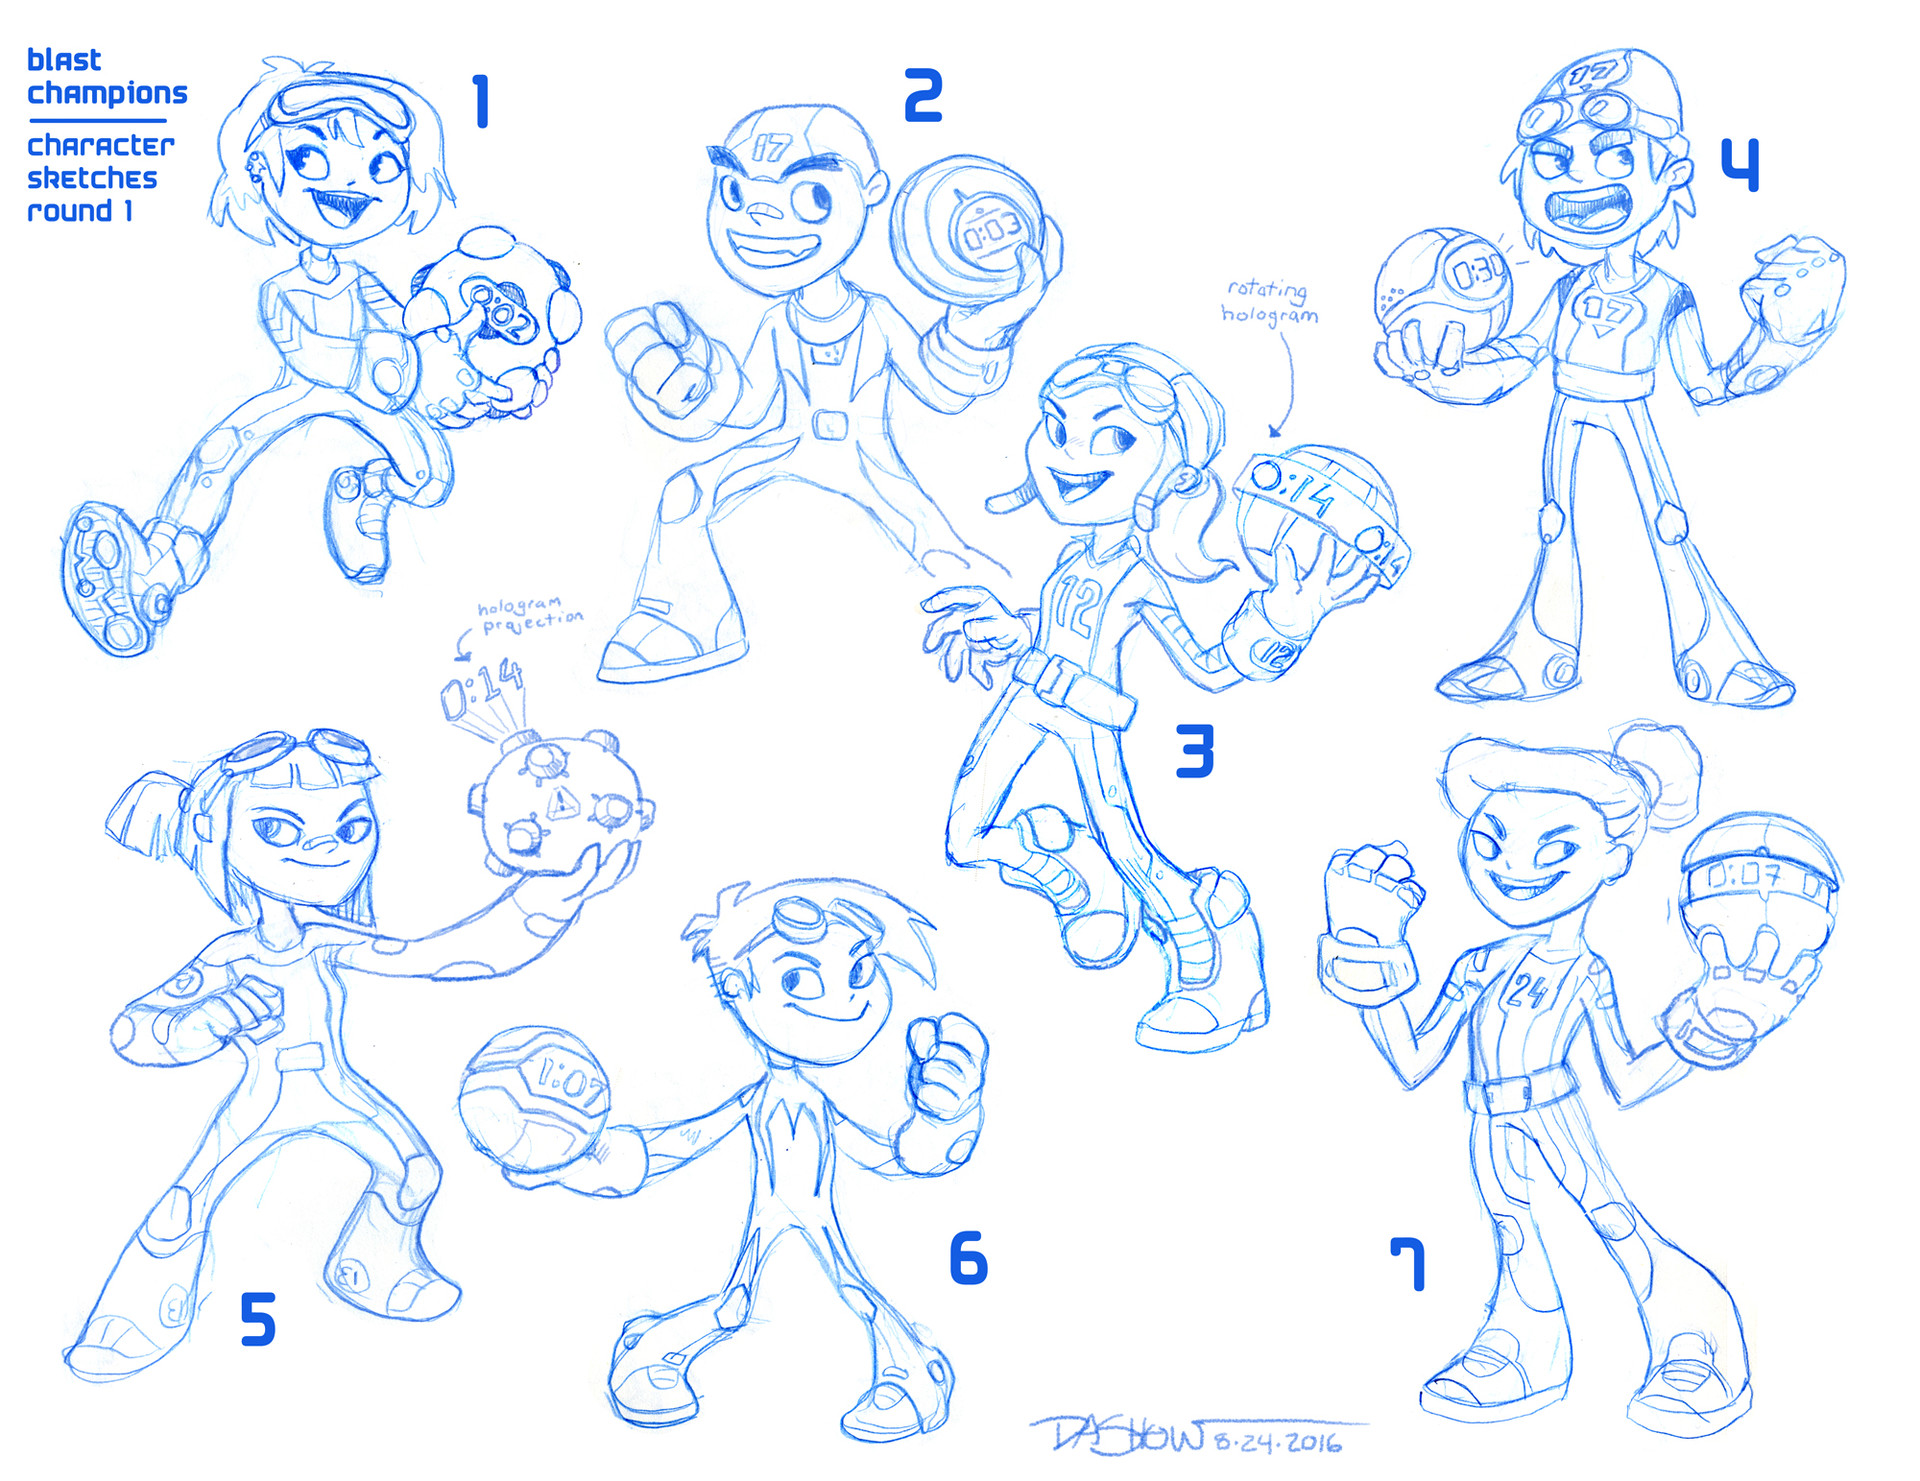 Michael dashow bc character sketches 01